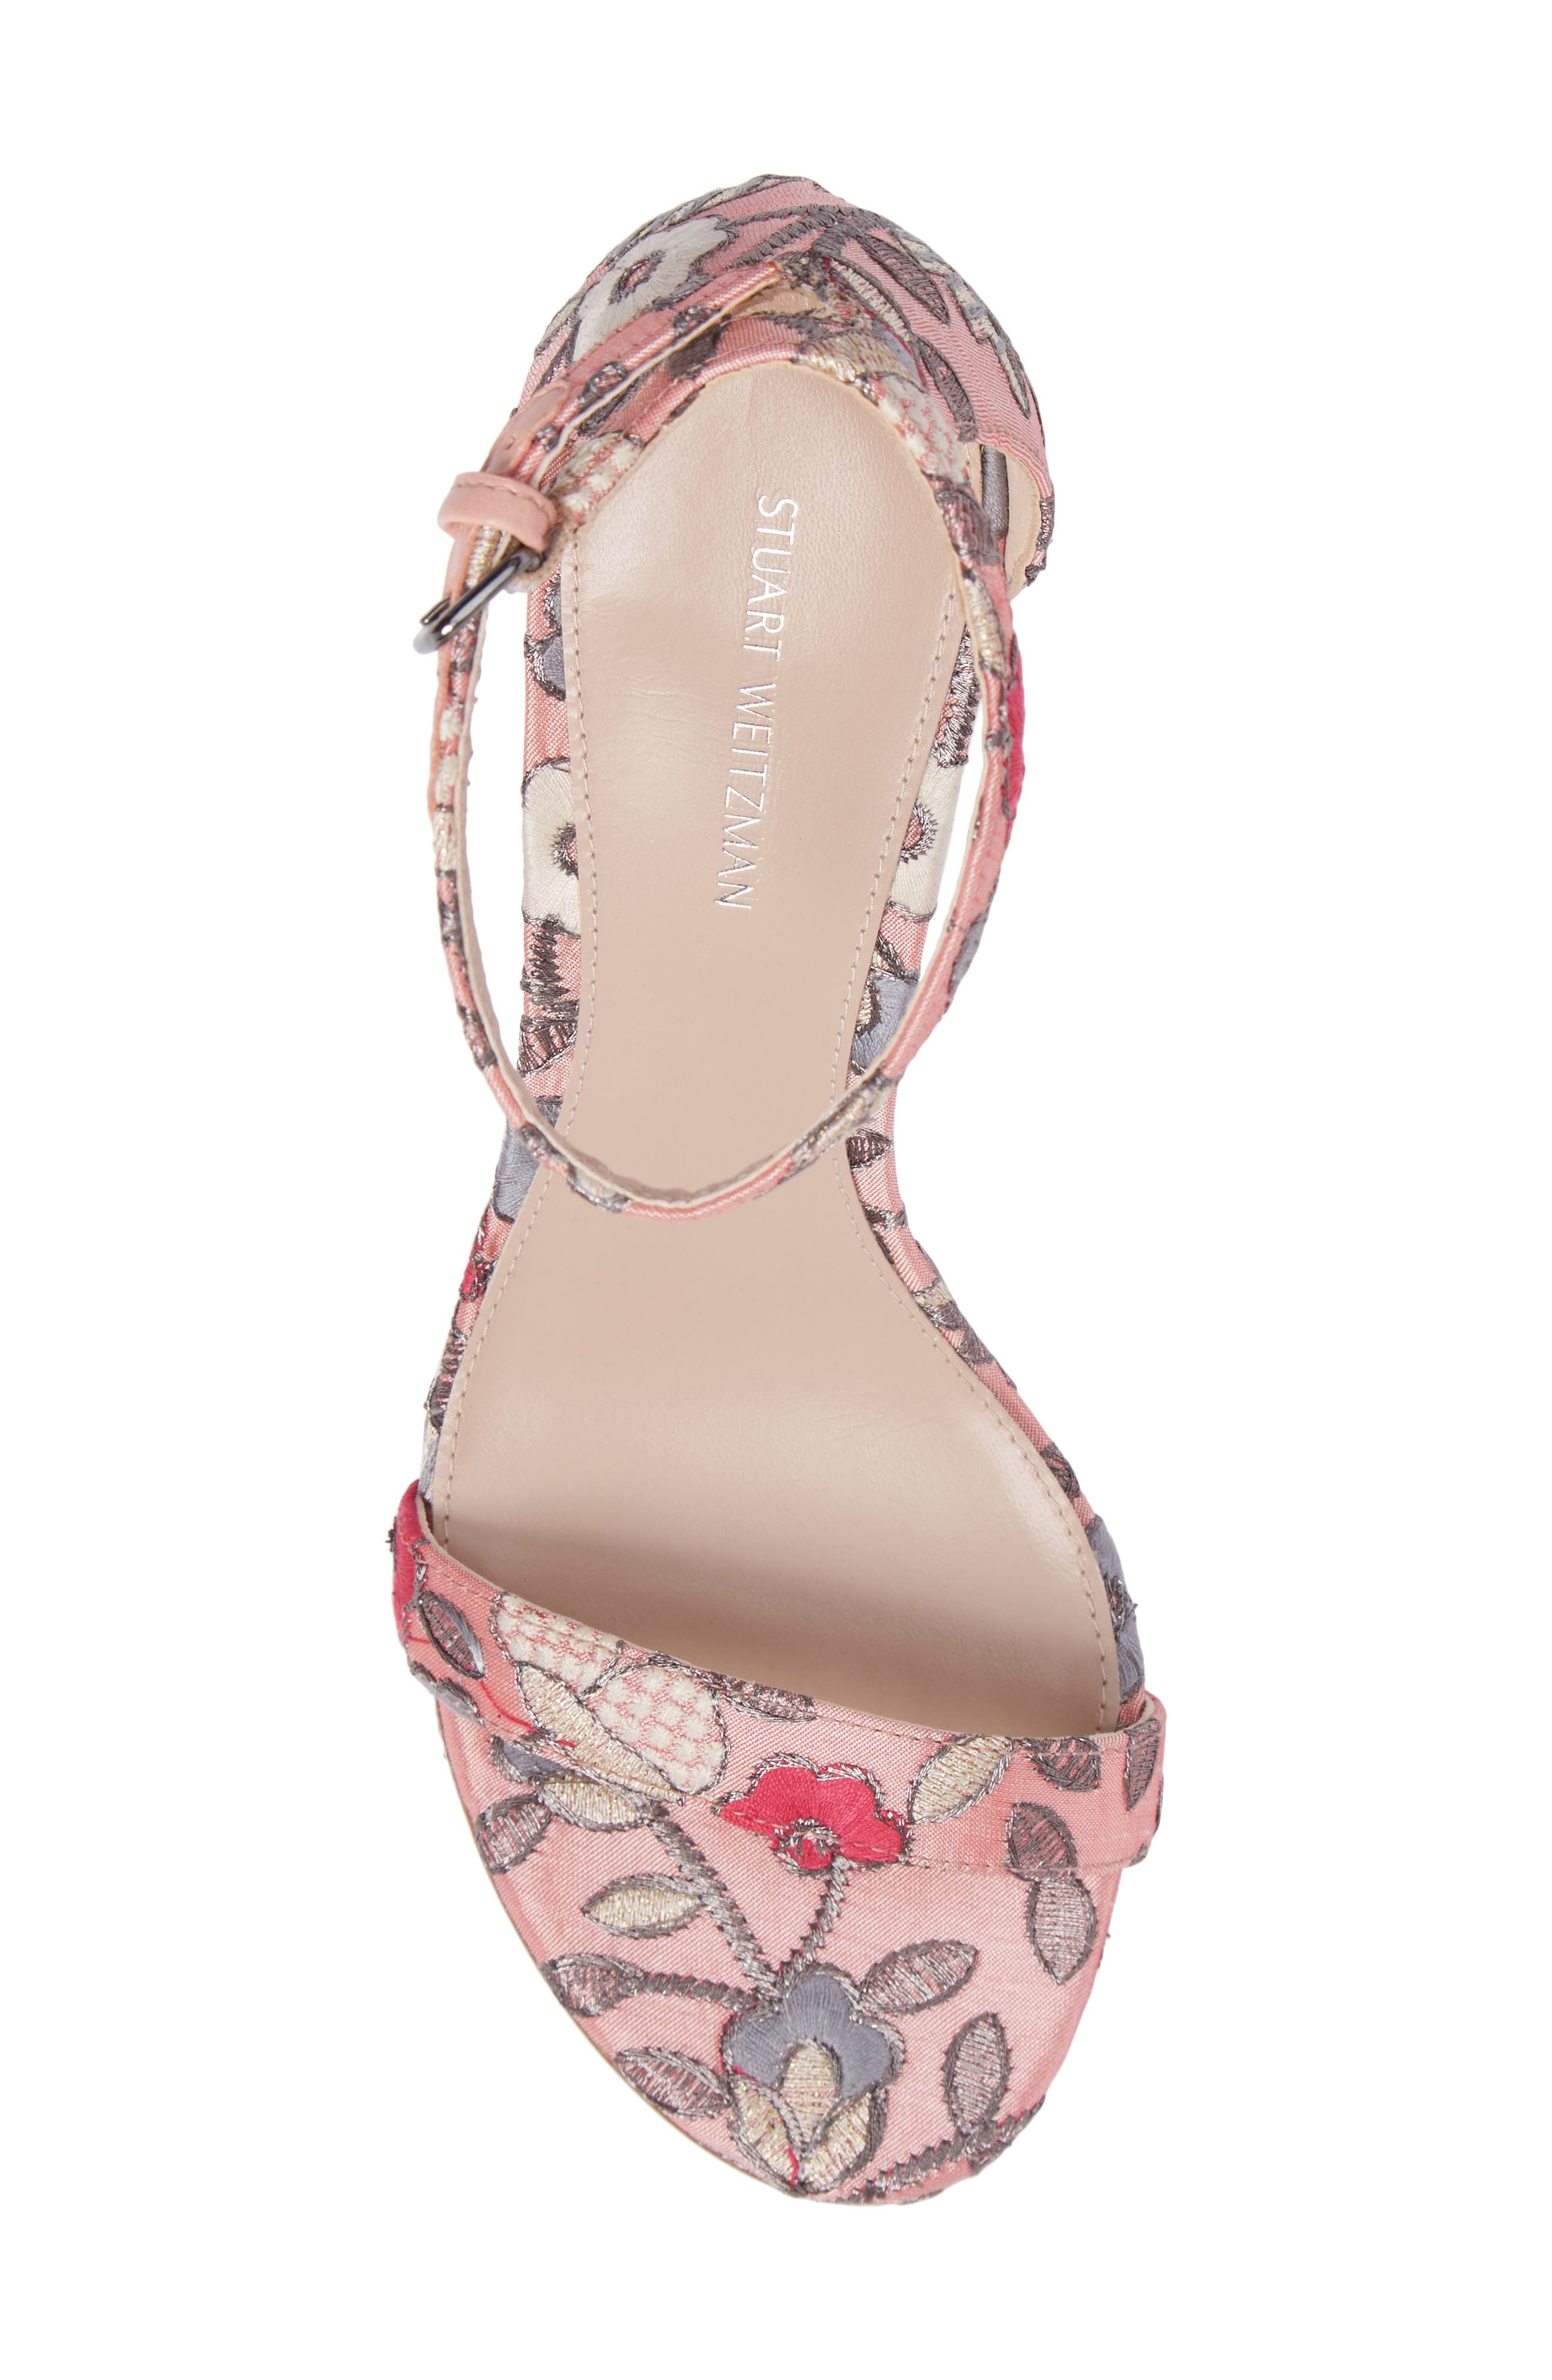 NearlyNude Ankle Strap Sandal,                             Alternate thumbnail 116, color,